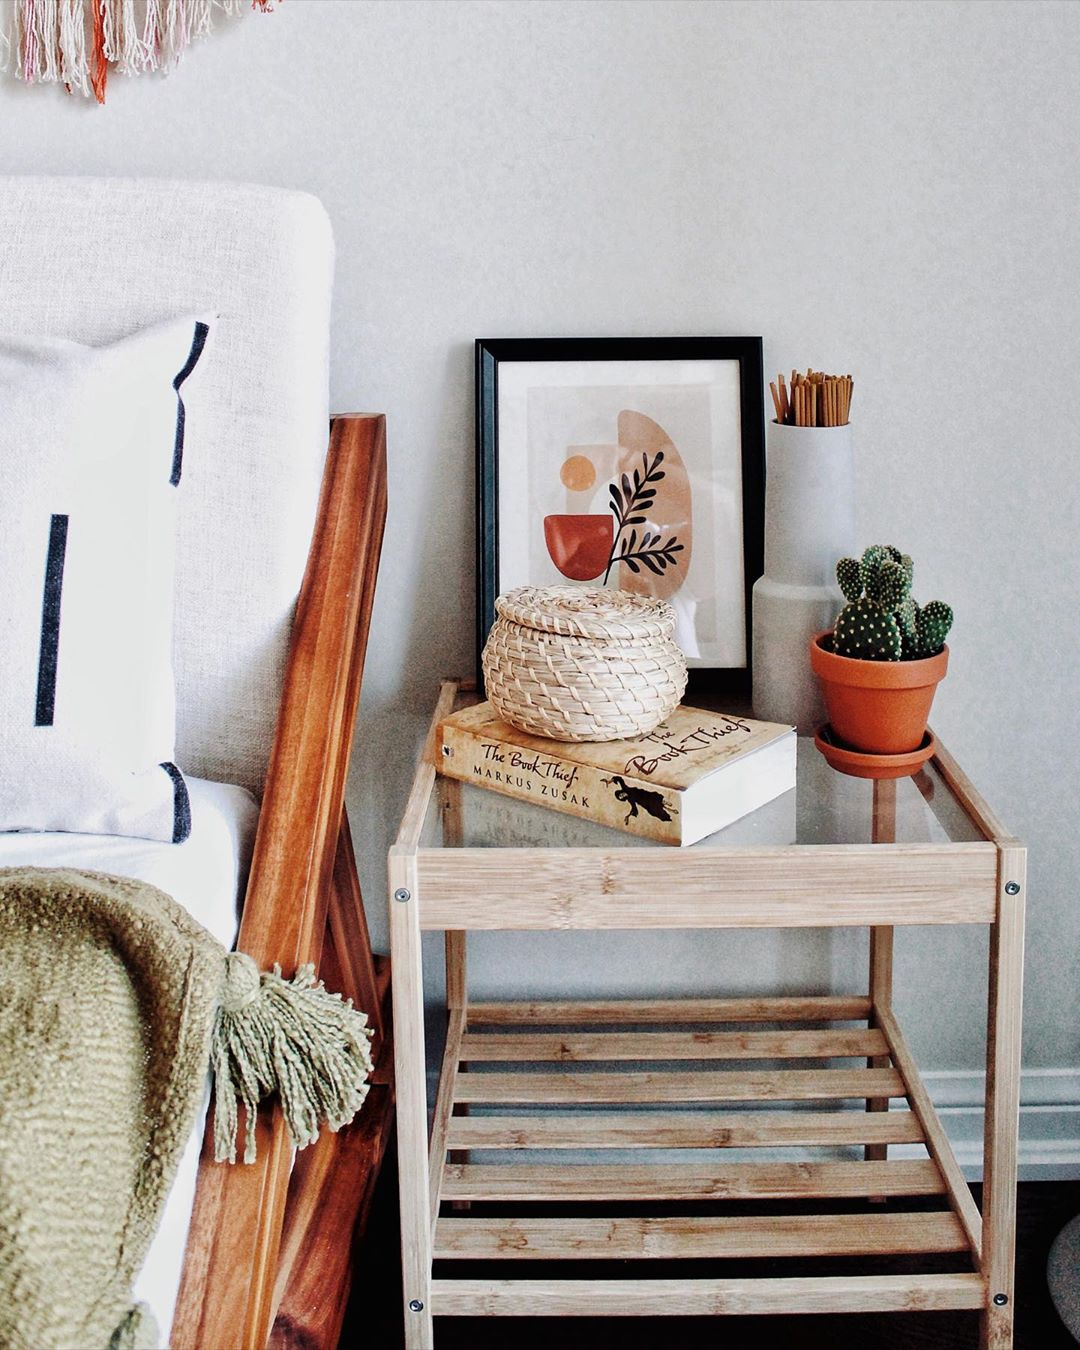 Cute and simple Dorm Room Ideas For College Students! Find the perfect dorm decor that fits your minimalist style. Get the best dorm room inspo and create the college bedroom of your dreams #dormroom #minimalistdorm #dormroomideas